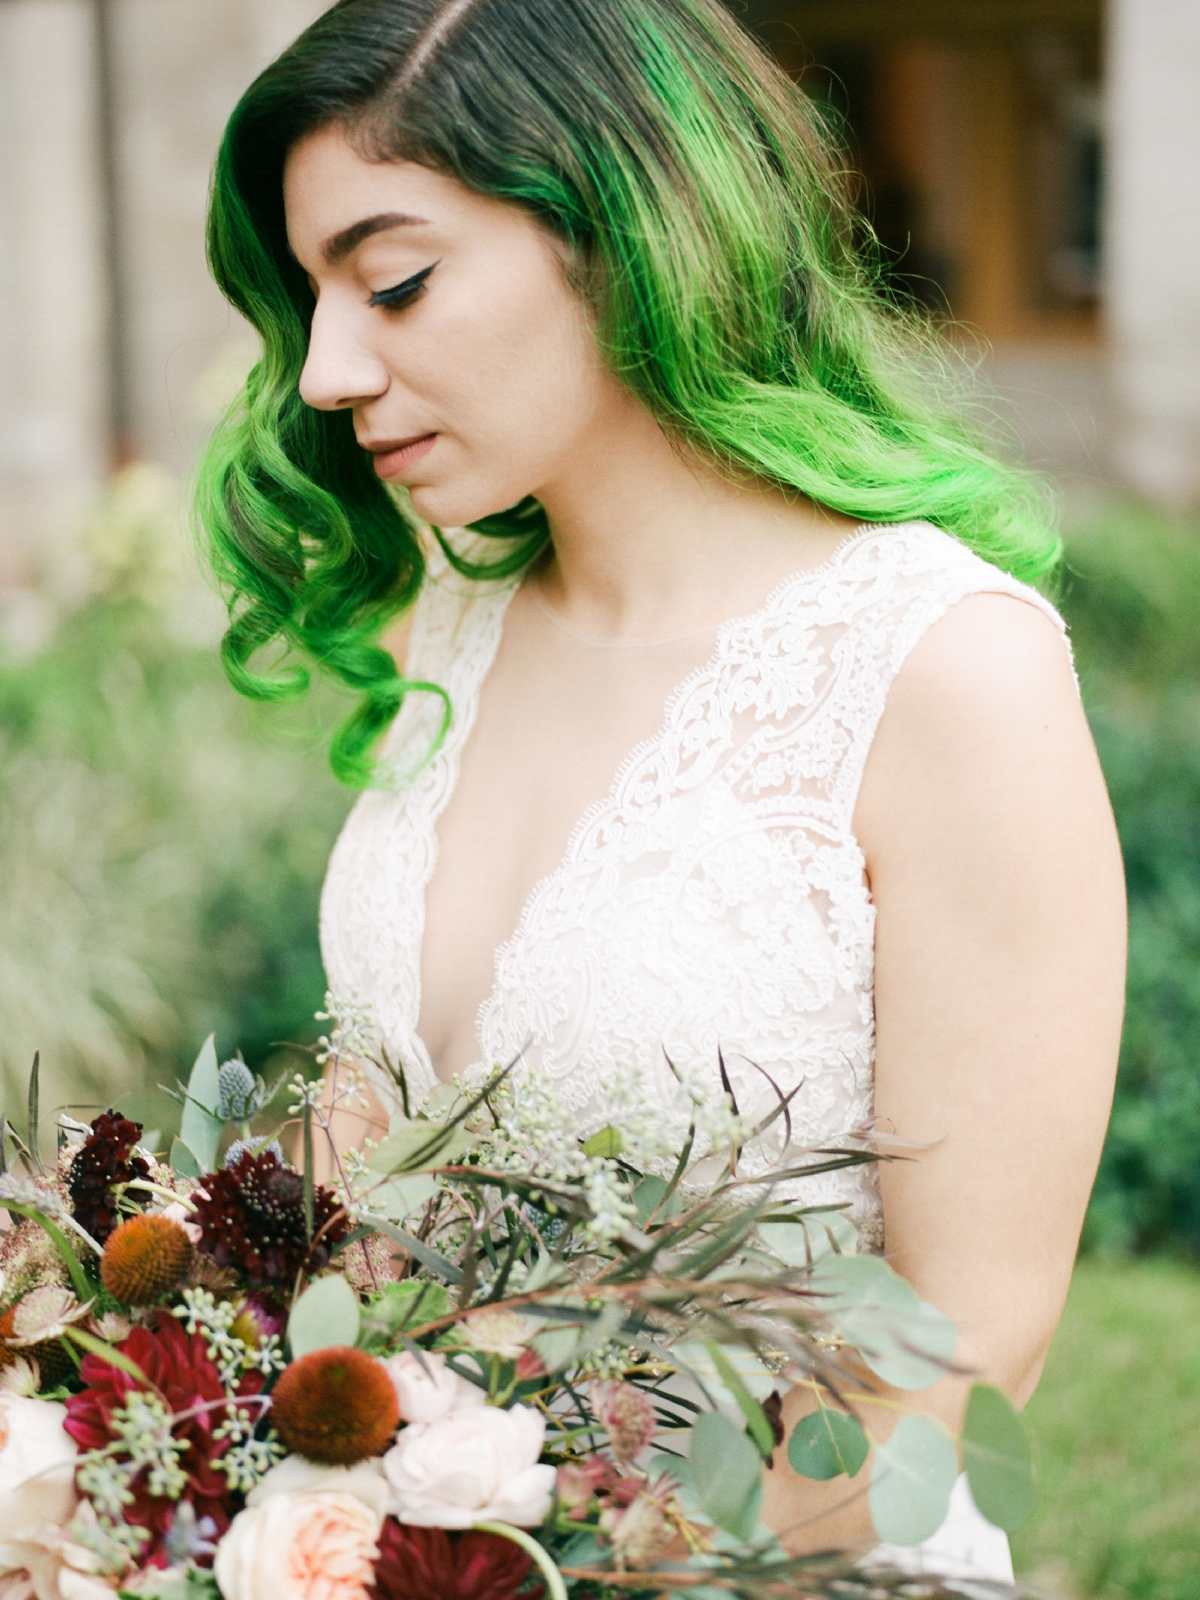 Bride With Green Hair | West Palm Beach Wedding Photographer  Shannon Griffin_0035.jpg